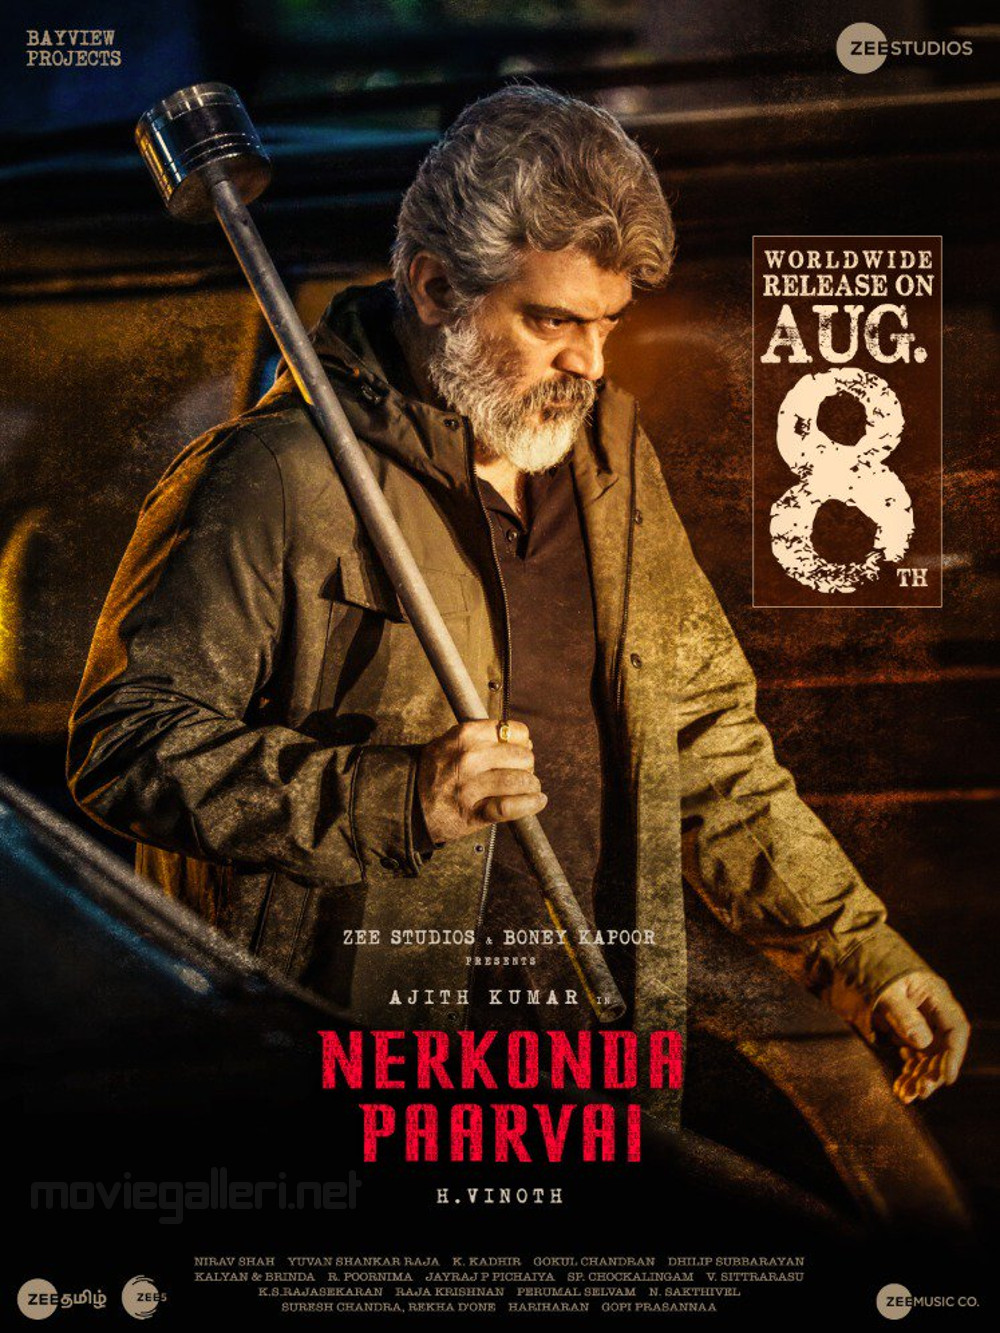 Ajith Nerkonda Paarvai Release Date on Aug 8th Posters